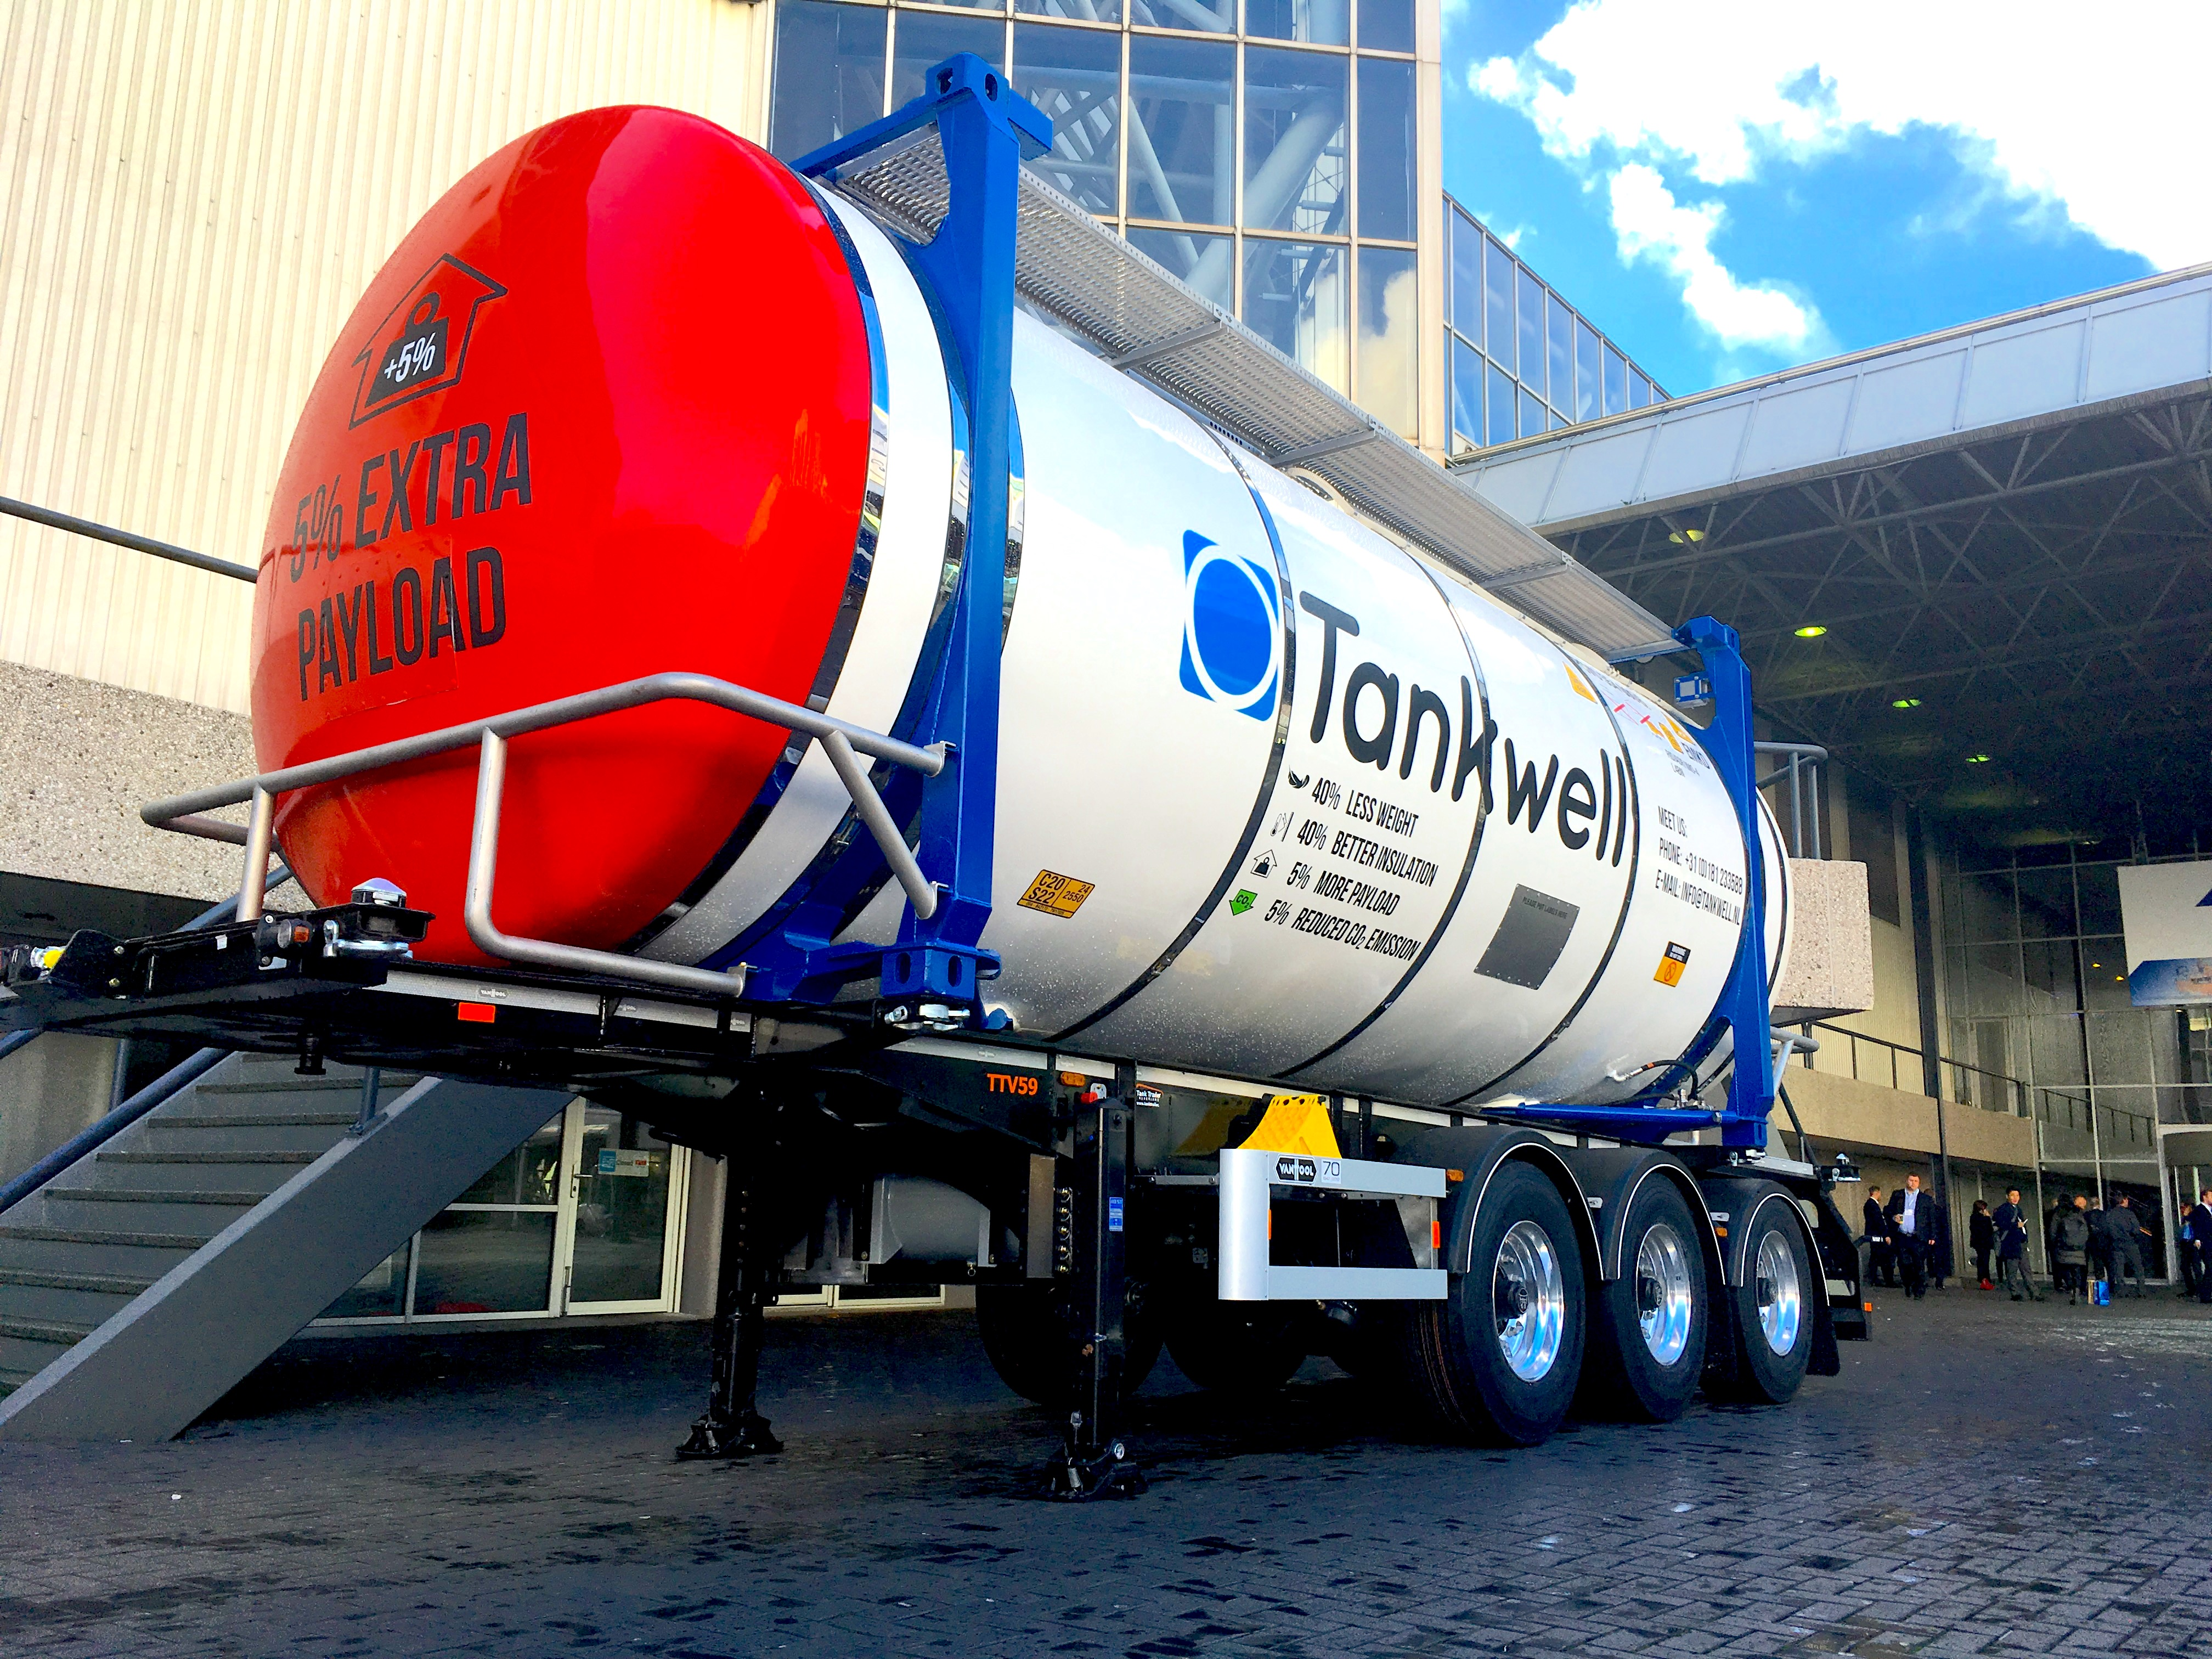 Tankwell, present at Intermodal show in Amsterdam, 28-30 November 2017